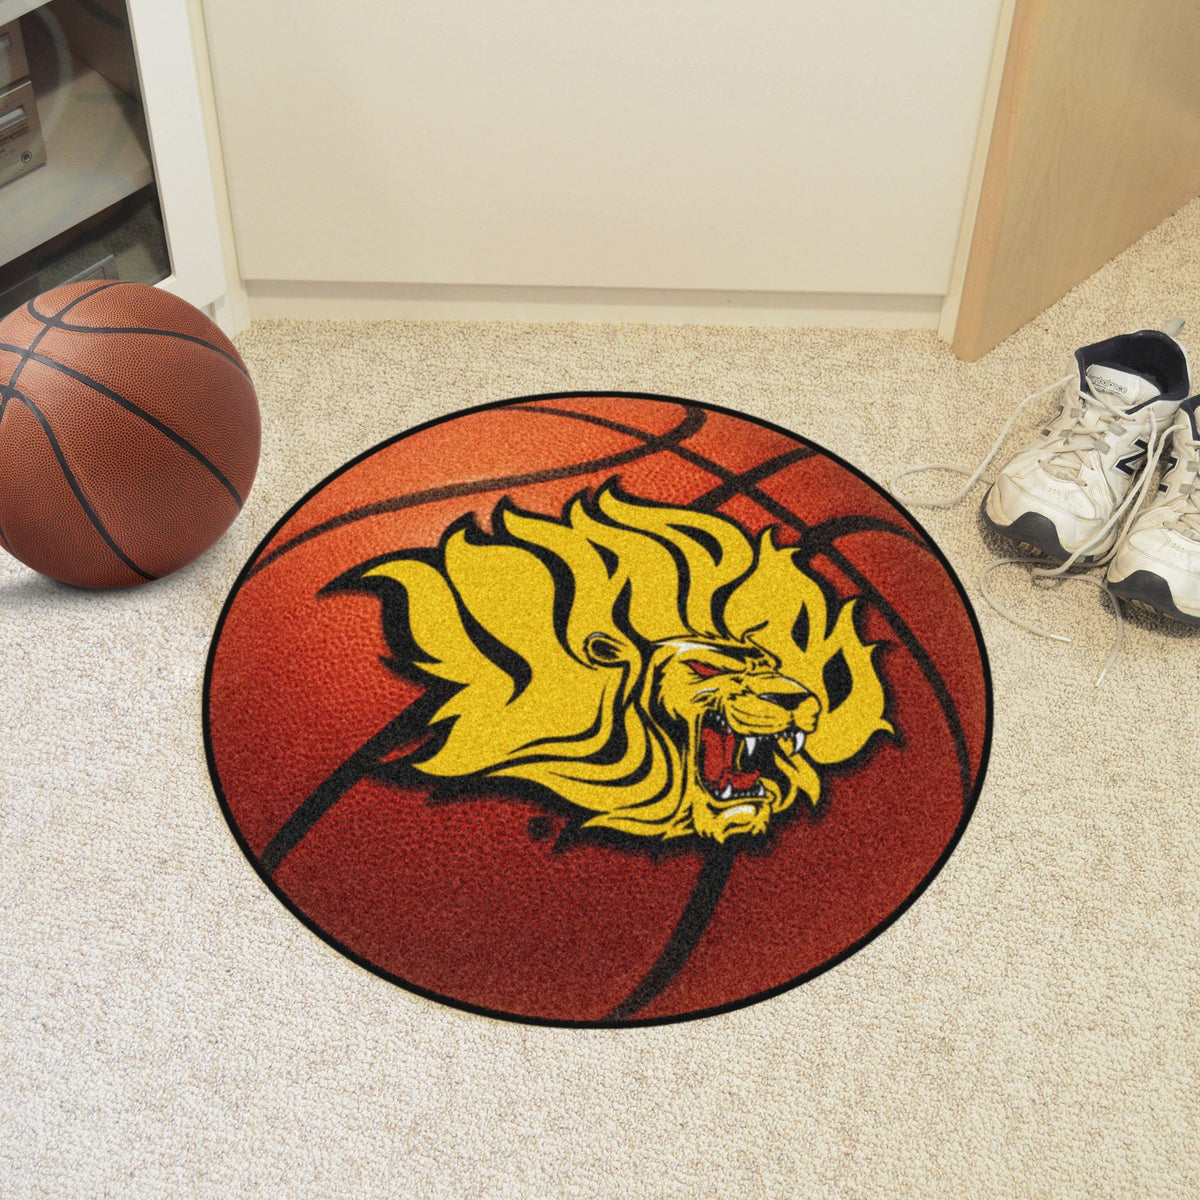 Collegiate - Basketball Mat: T - Z Collegiate Mats, Rectangular Mats, Basketball Mat, Collegiate, Home Fan Mats UAPB